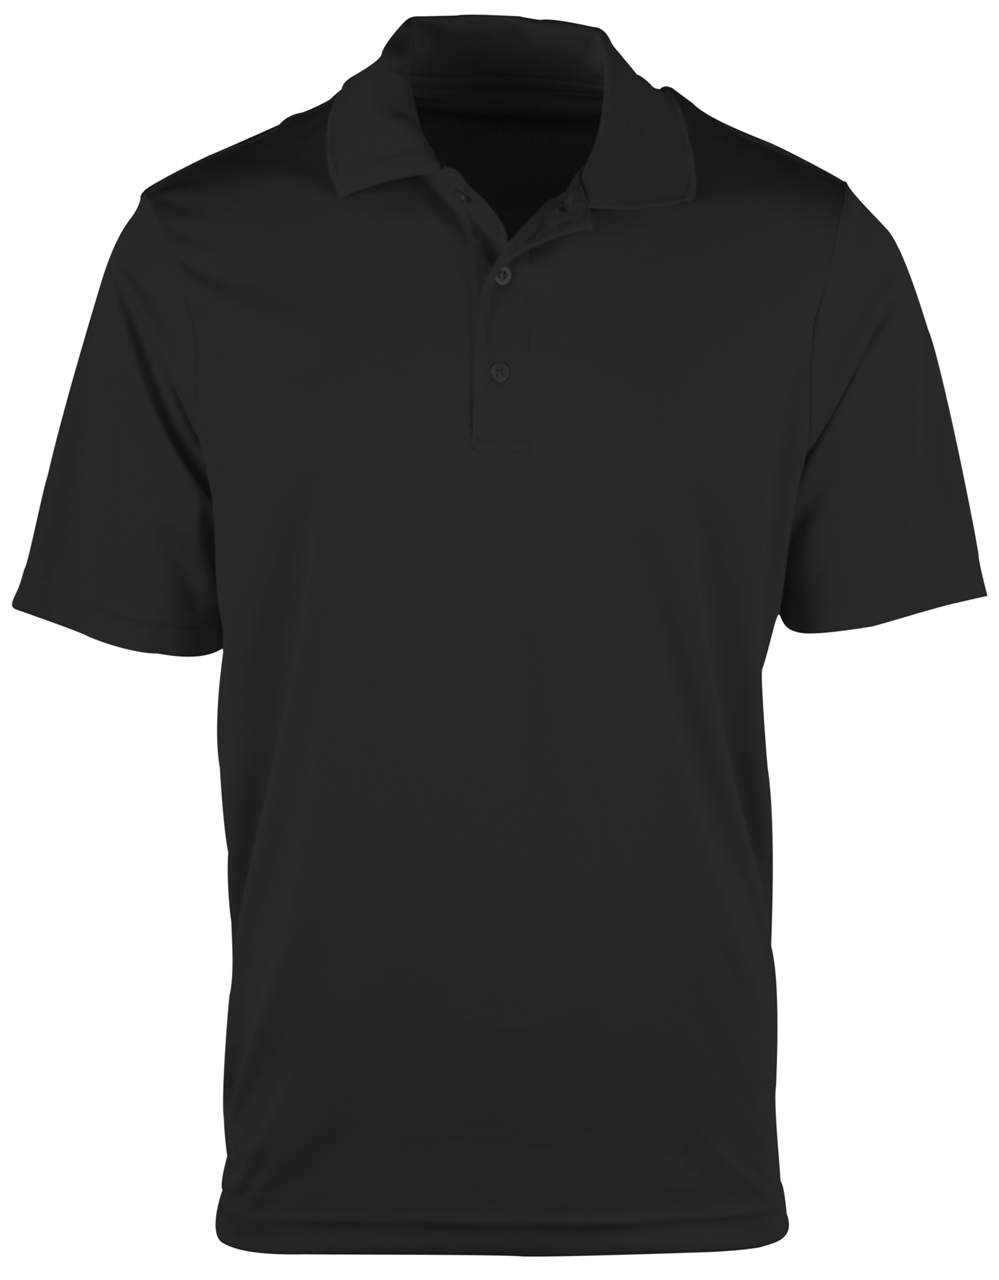 Picture of Core365 Men's Tall Performance Pique Polo